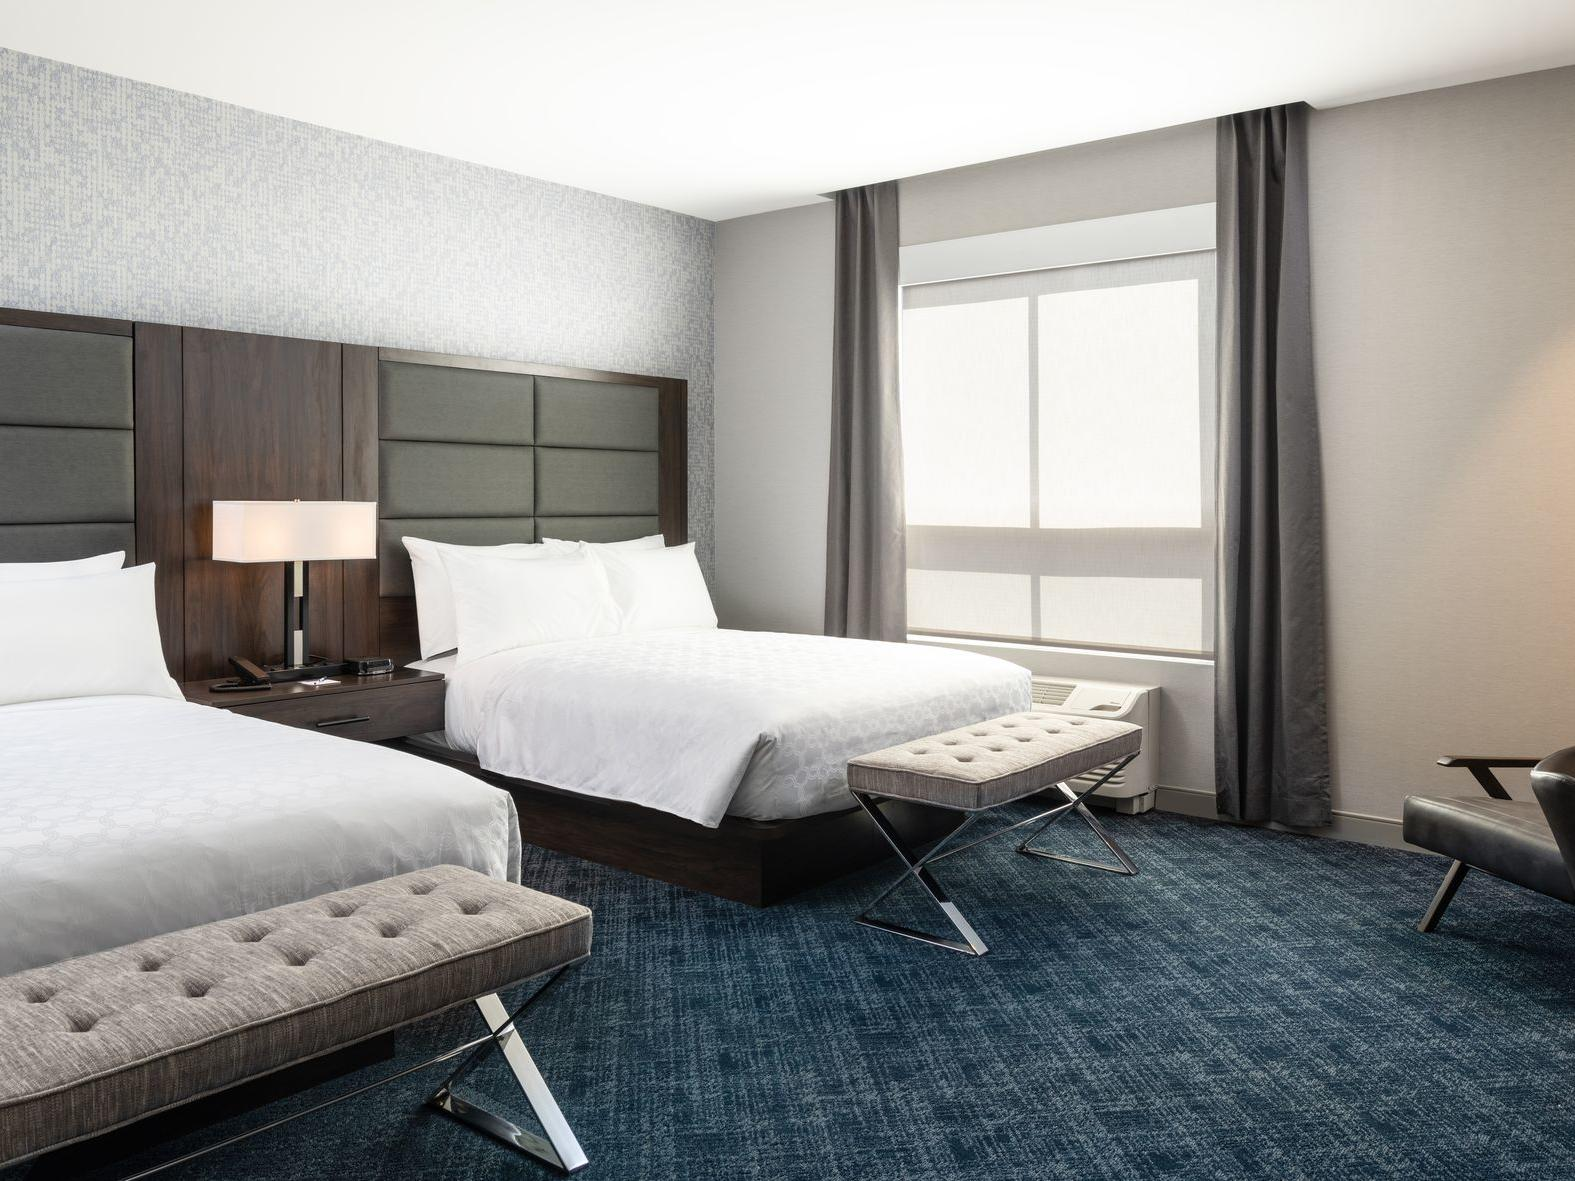 two beds in carpeted hotel room with window